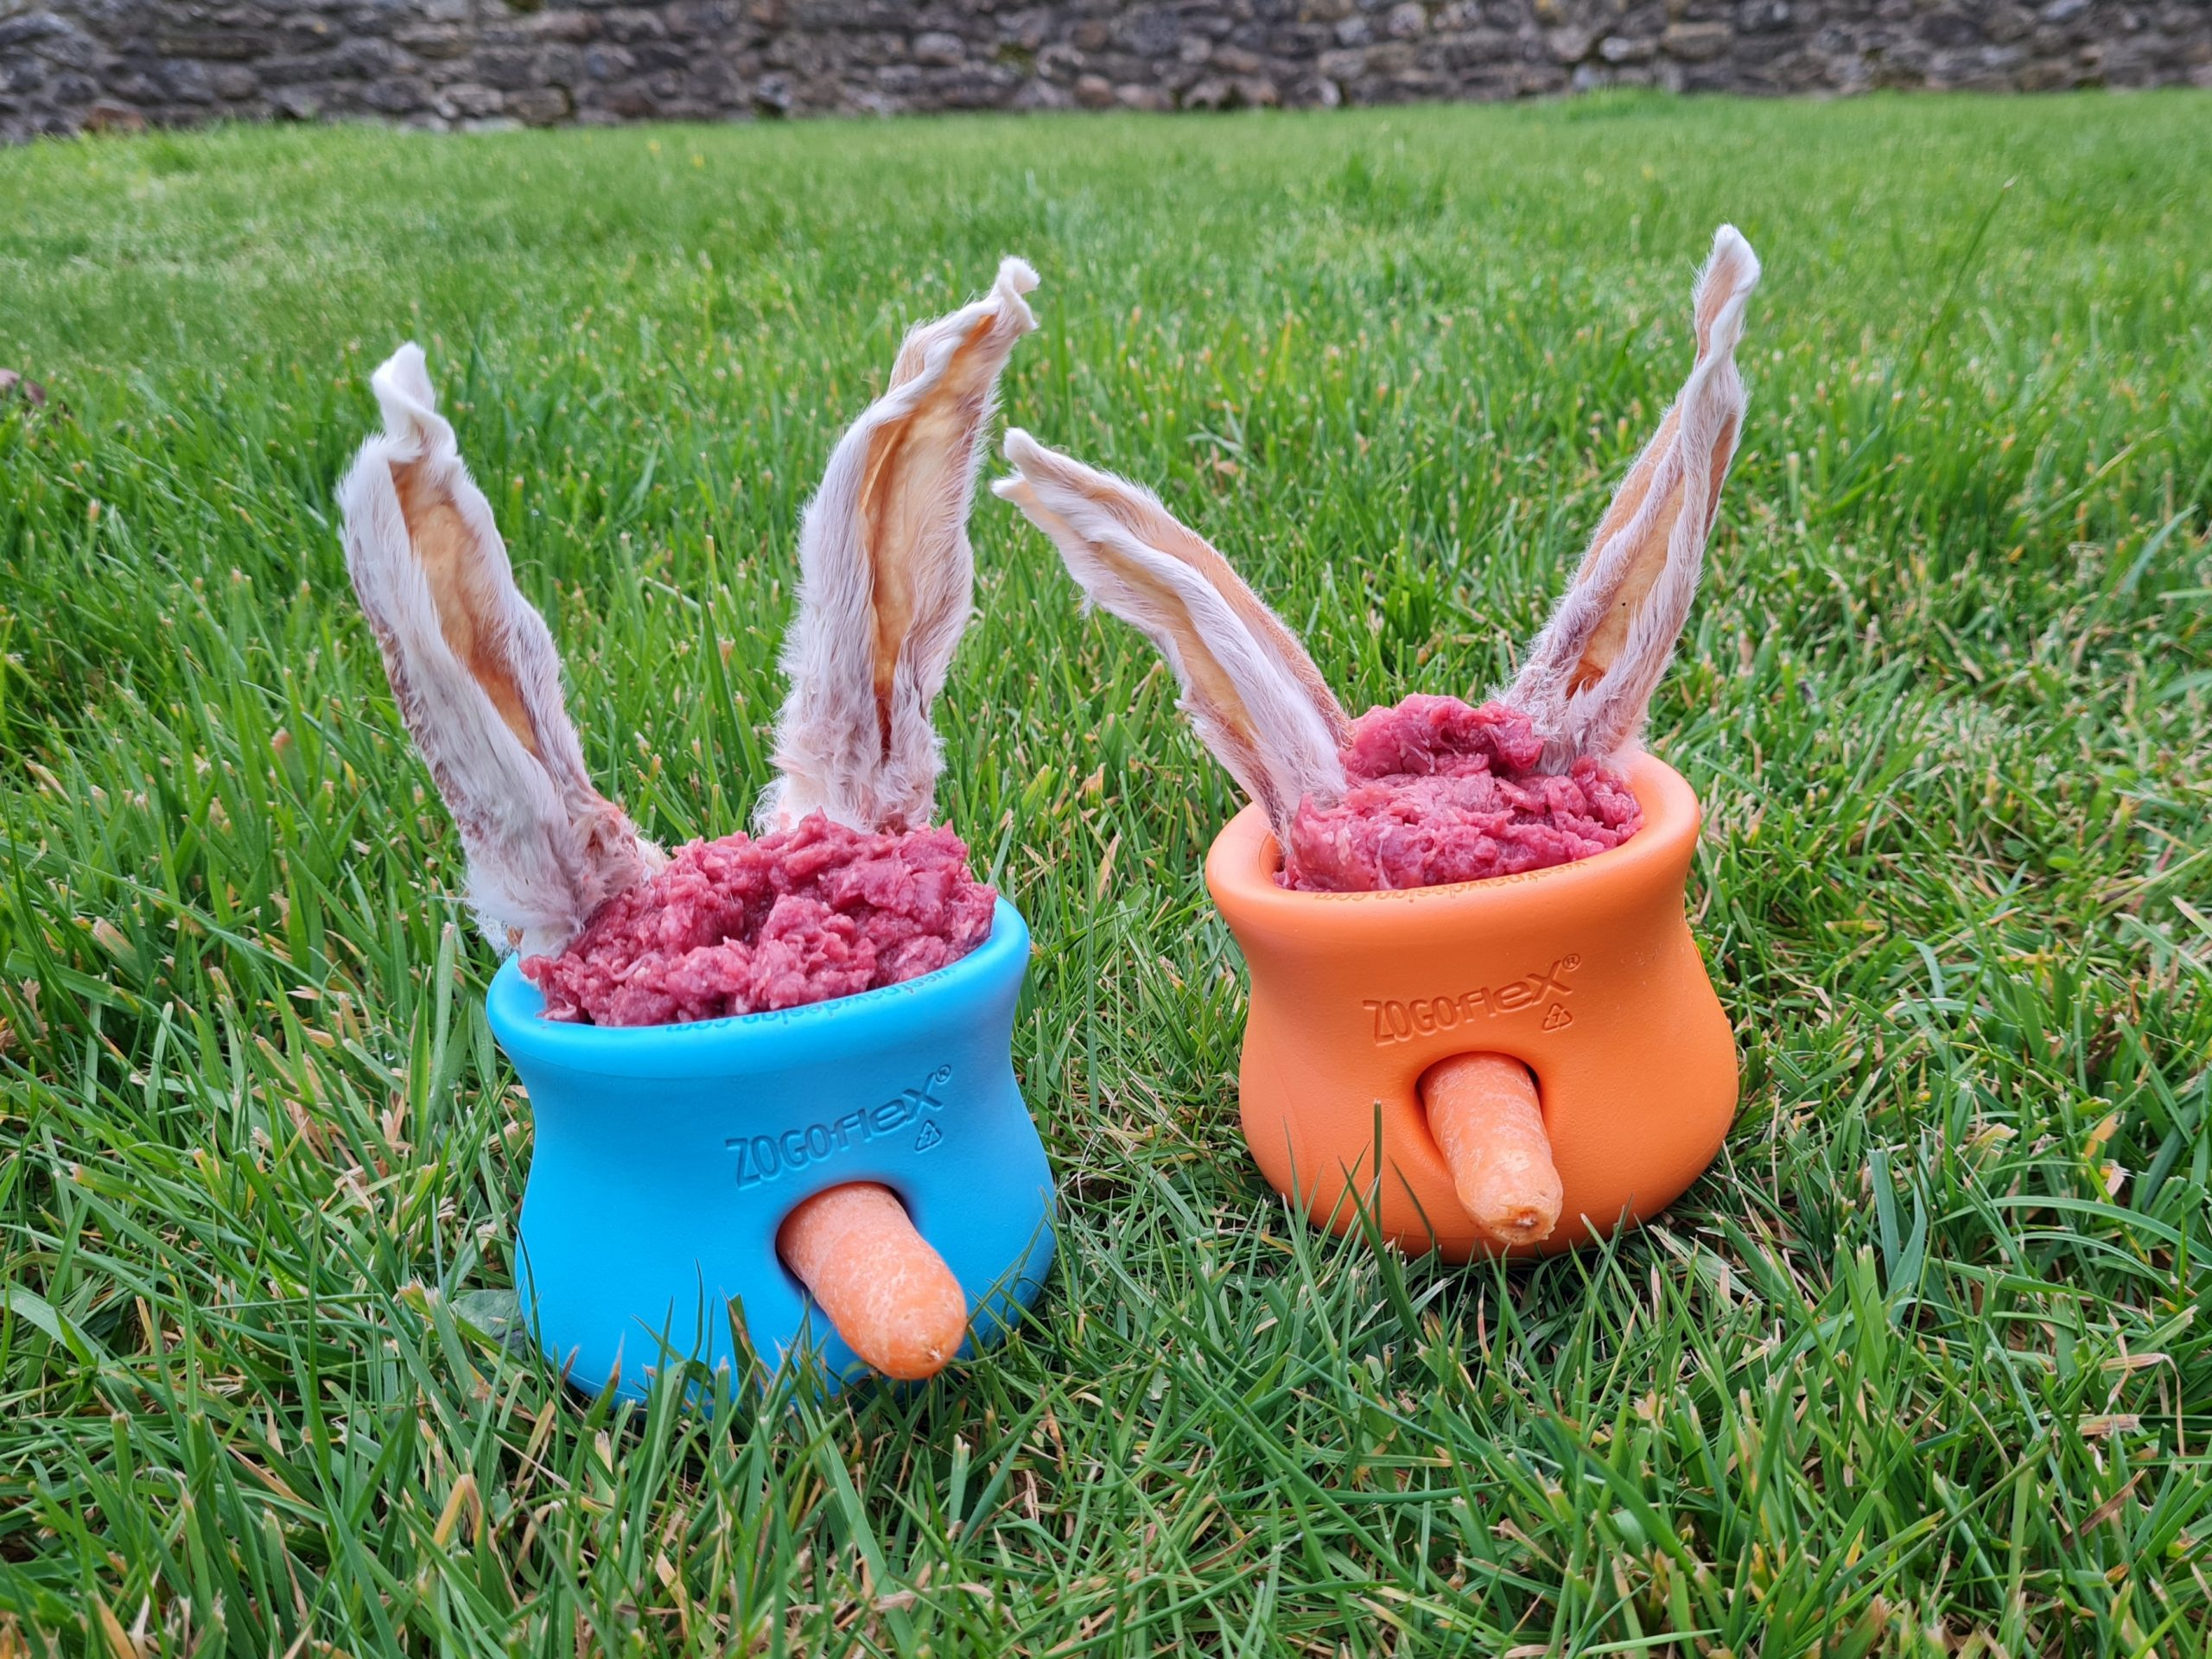 West paw Toppl, Toppl, Westpaw Toppl, dog enrichment, slow feeders for raw dog food, dog enrichment ideas